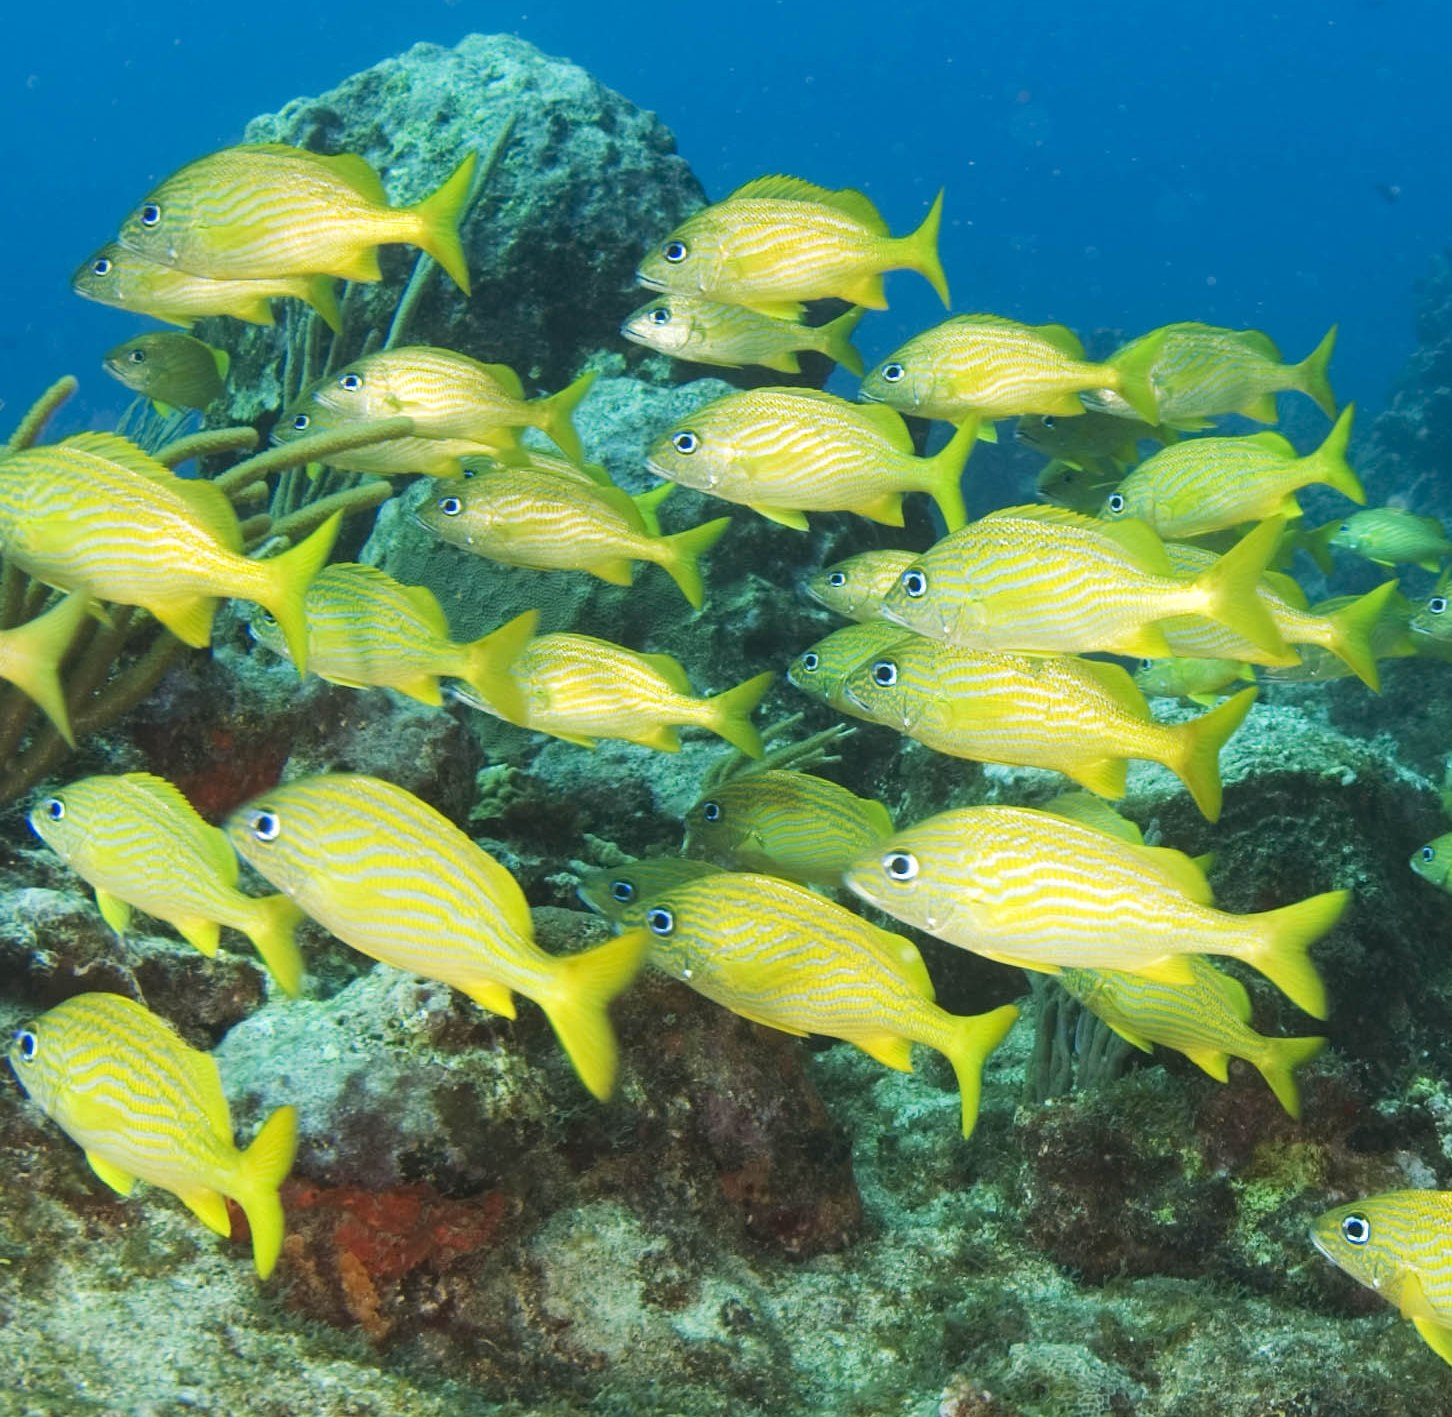 Grunts and Gnathiids: One Fish's Daily Migration to Escape Parasites?